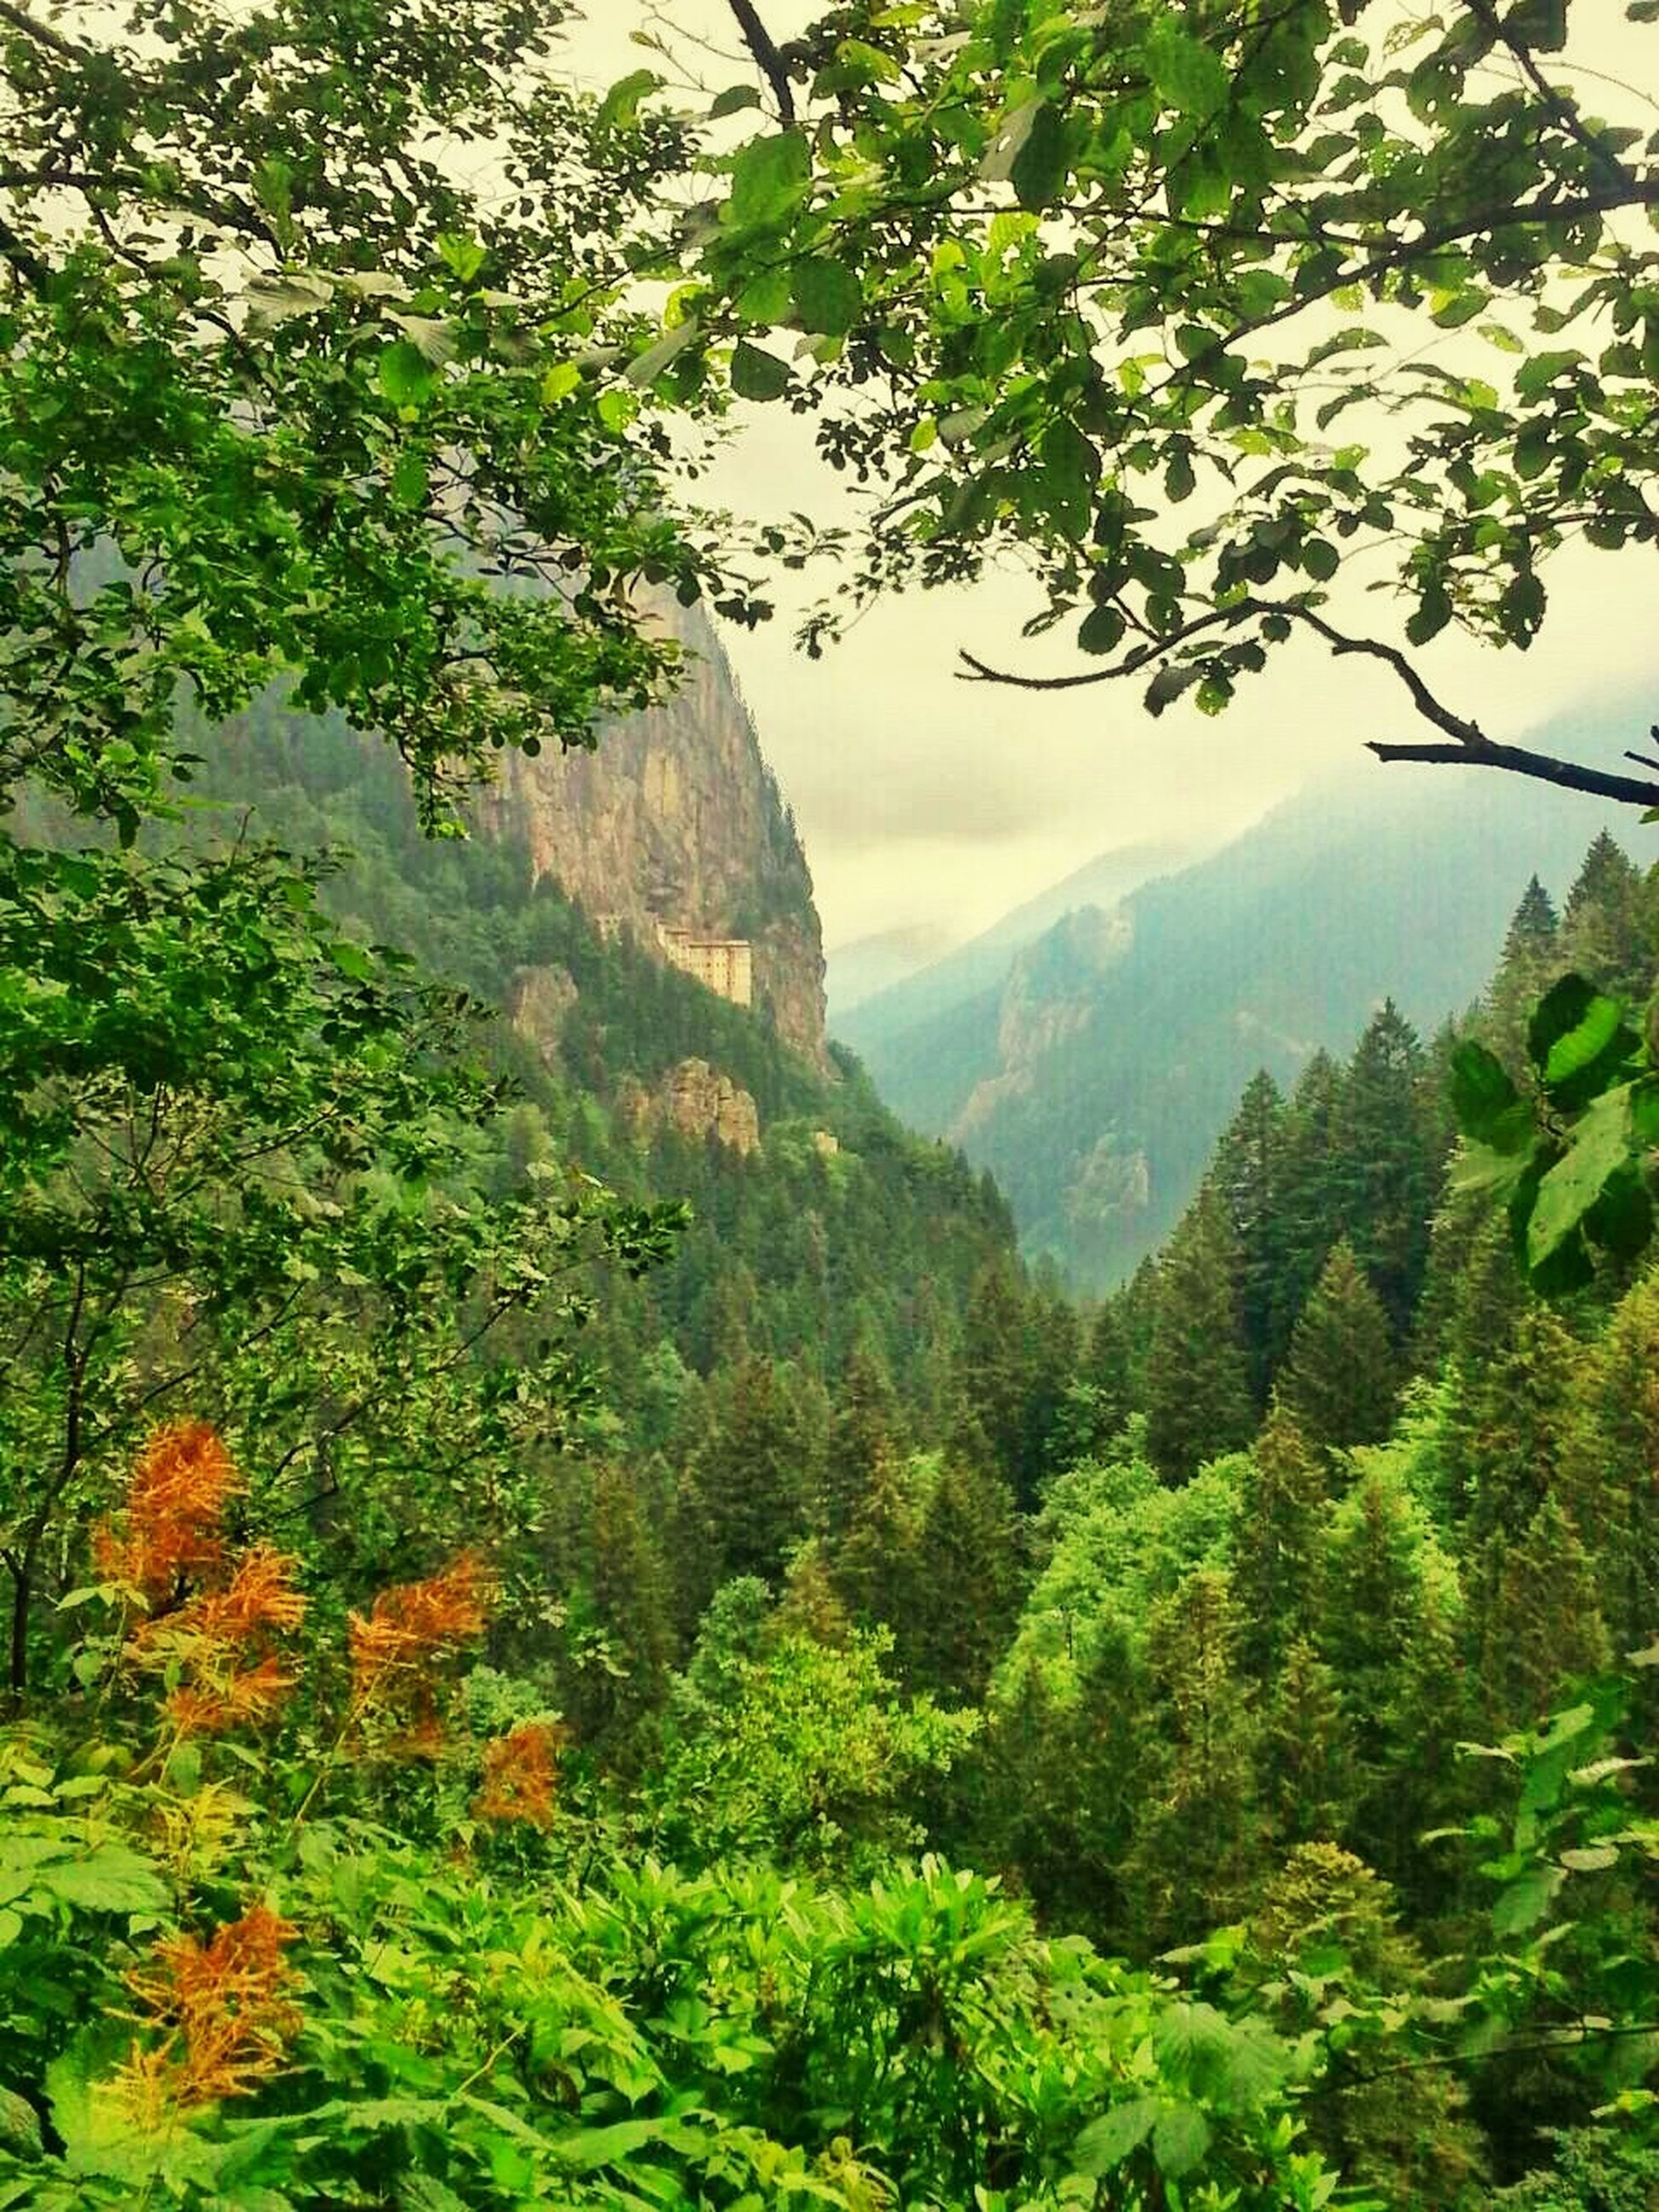 tree, mountain, tranquil scene, tranquility, scenics, green color, beauty in nature, lush foliage, growth, nature, forest, green, non-urban scene, landscape, idyllic, sky, valley, day, greenery, branch